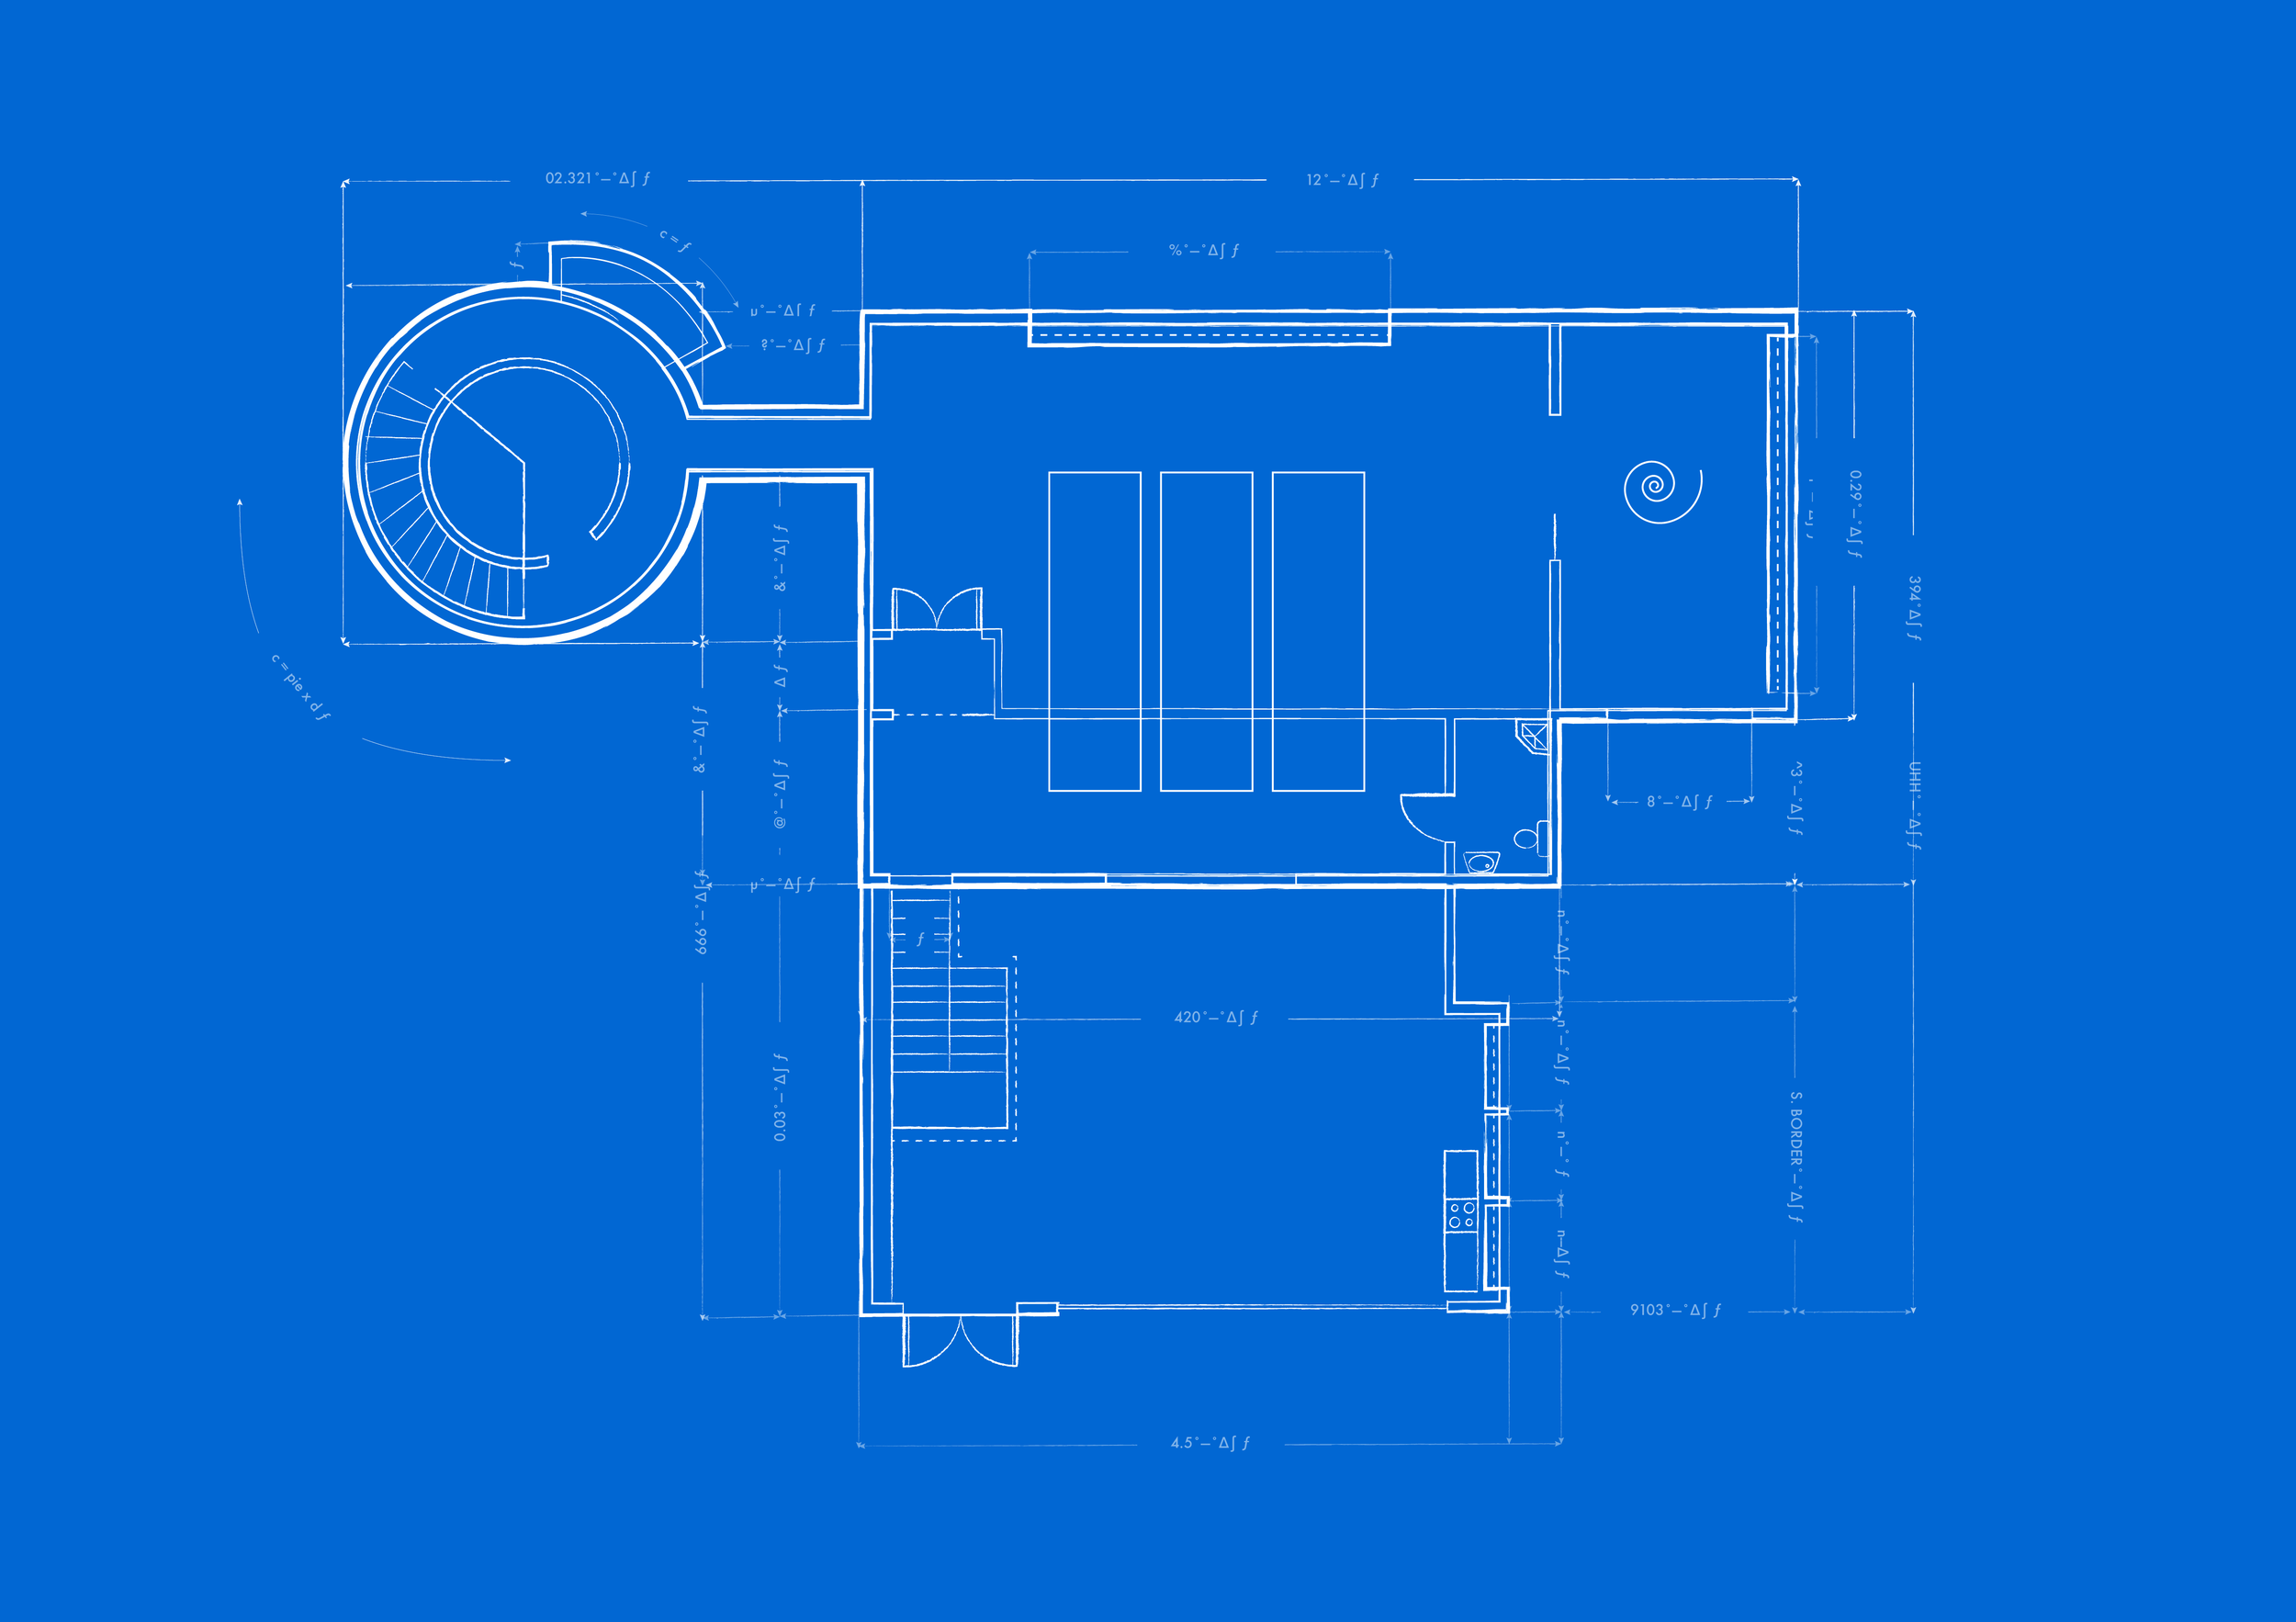 freyron cafe blueprint-02.png